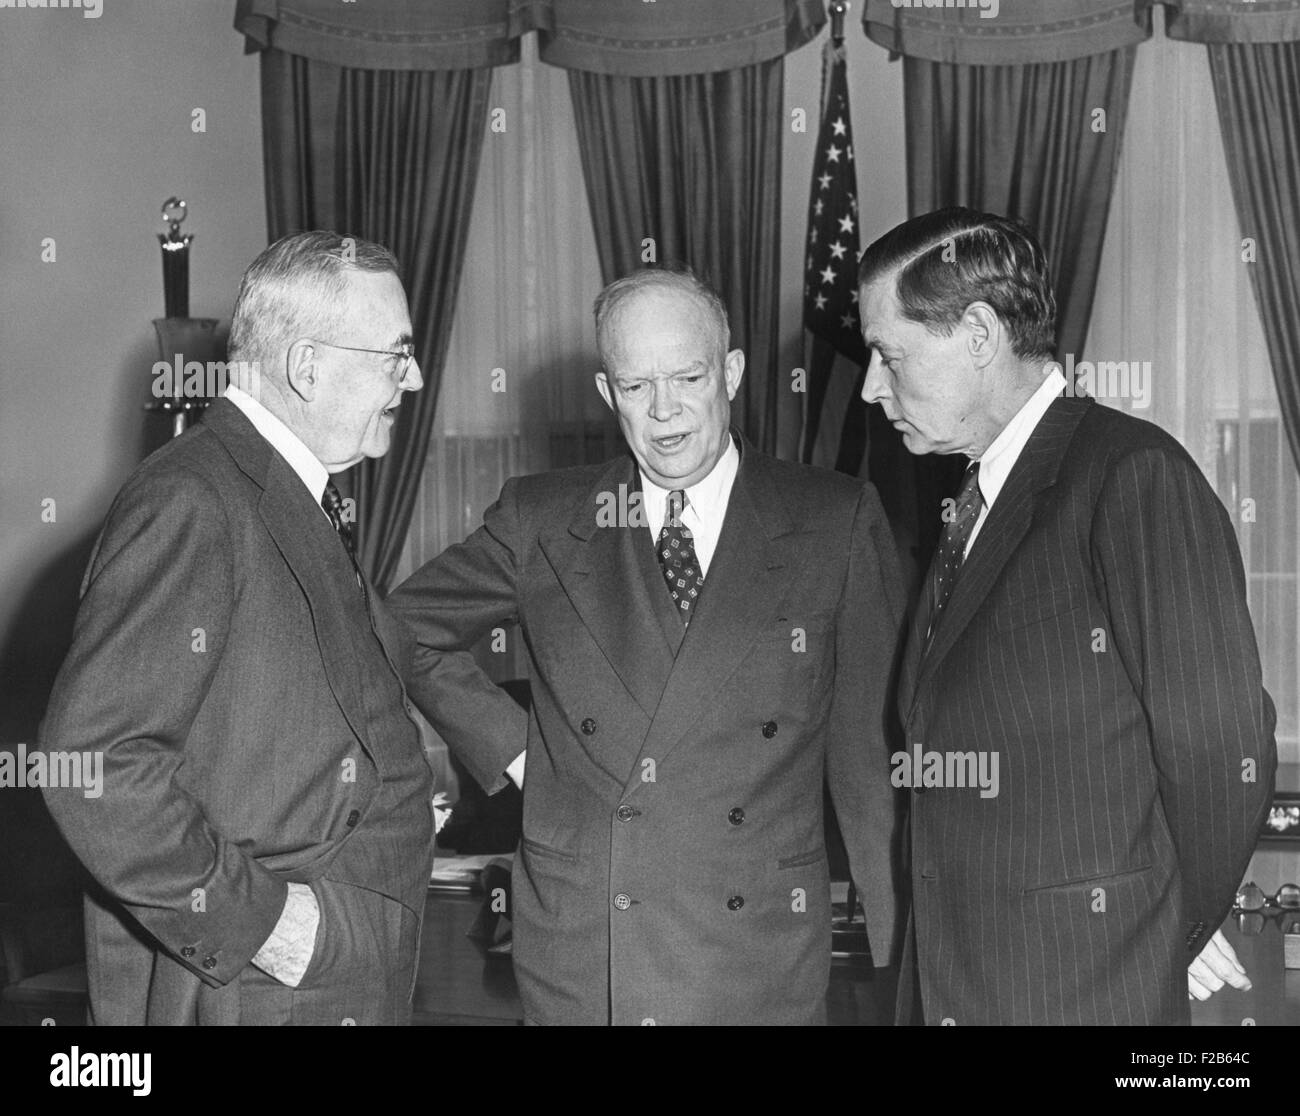 President Eisenhower in conversation with Sec. of State John Foster Dulles and Charles Bohlen. Bolan (at right) - Stock Image